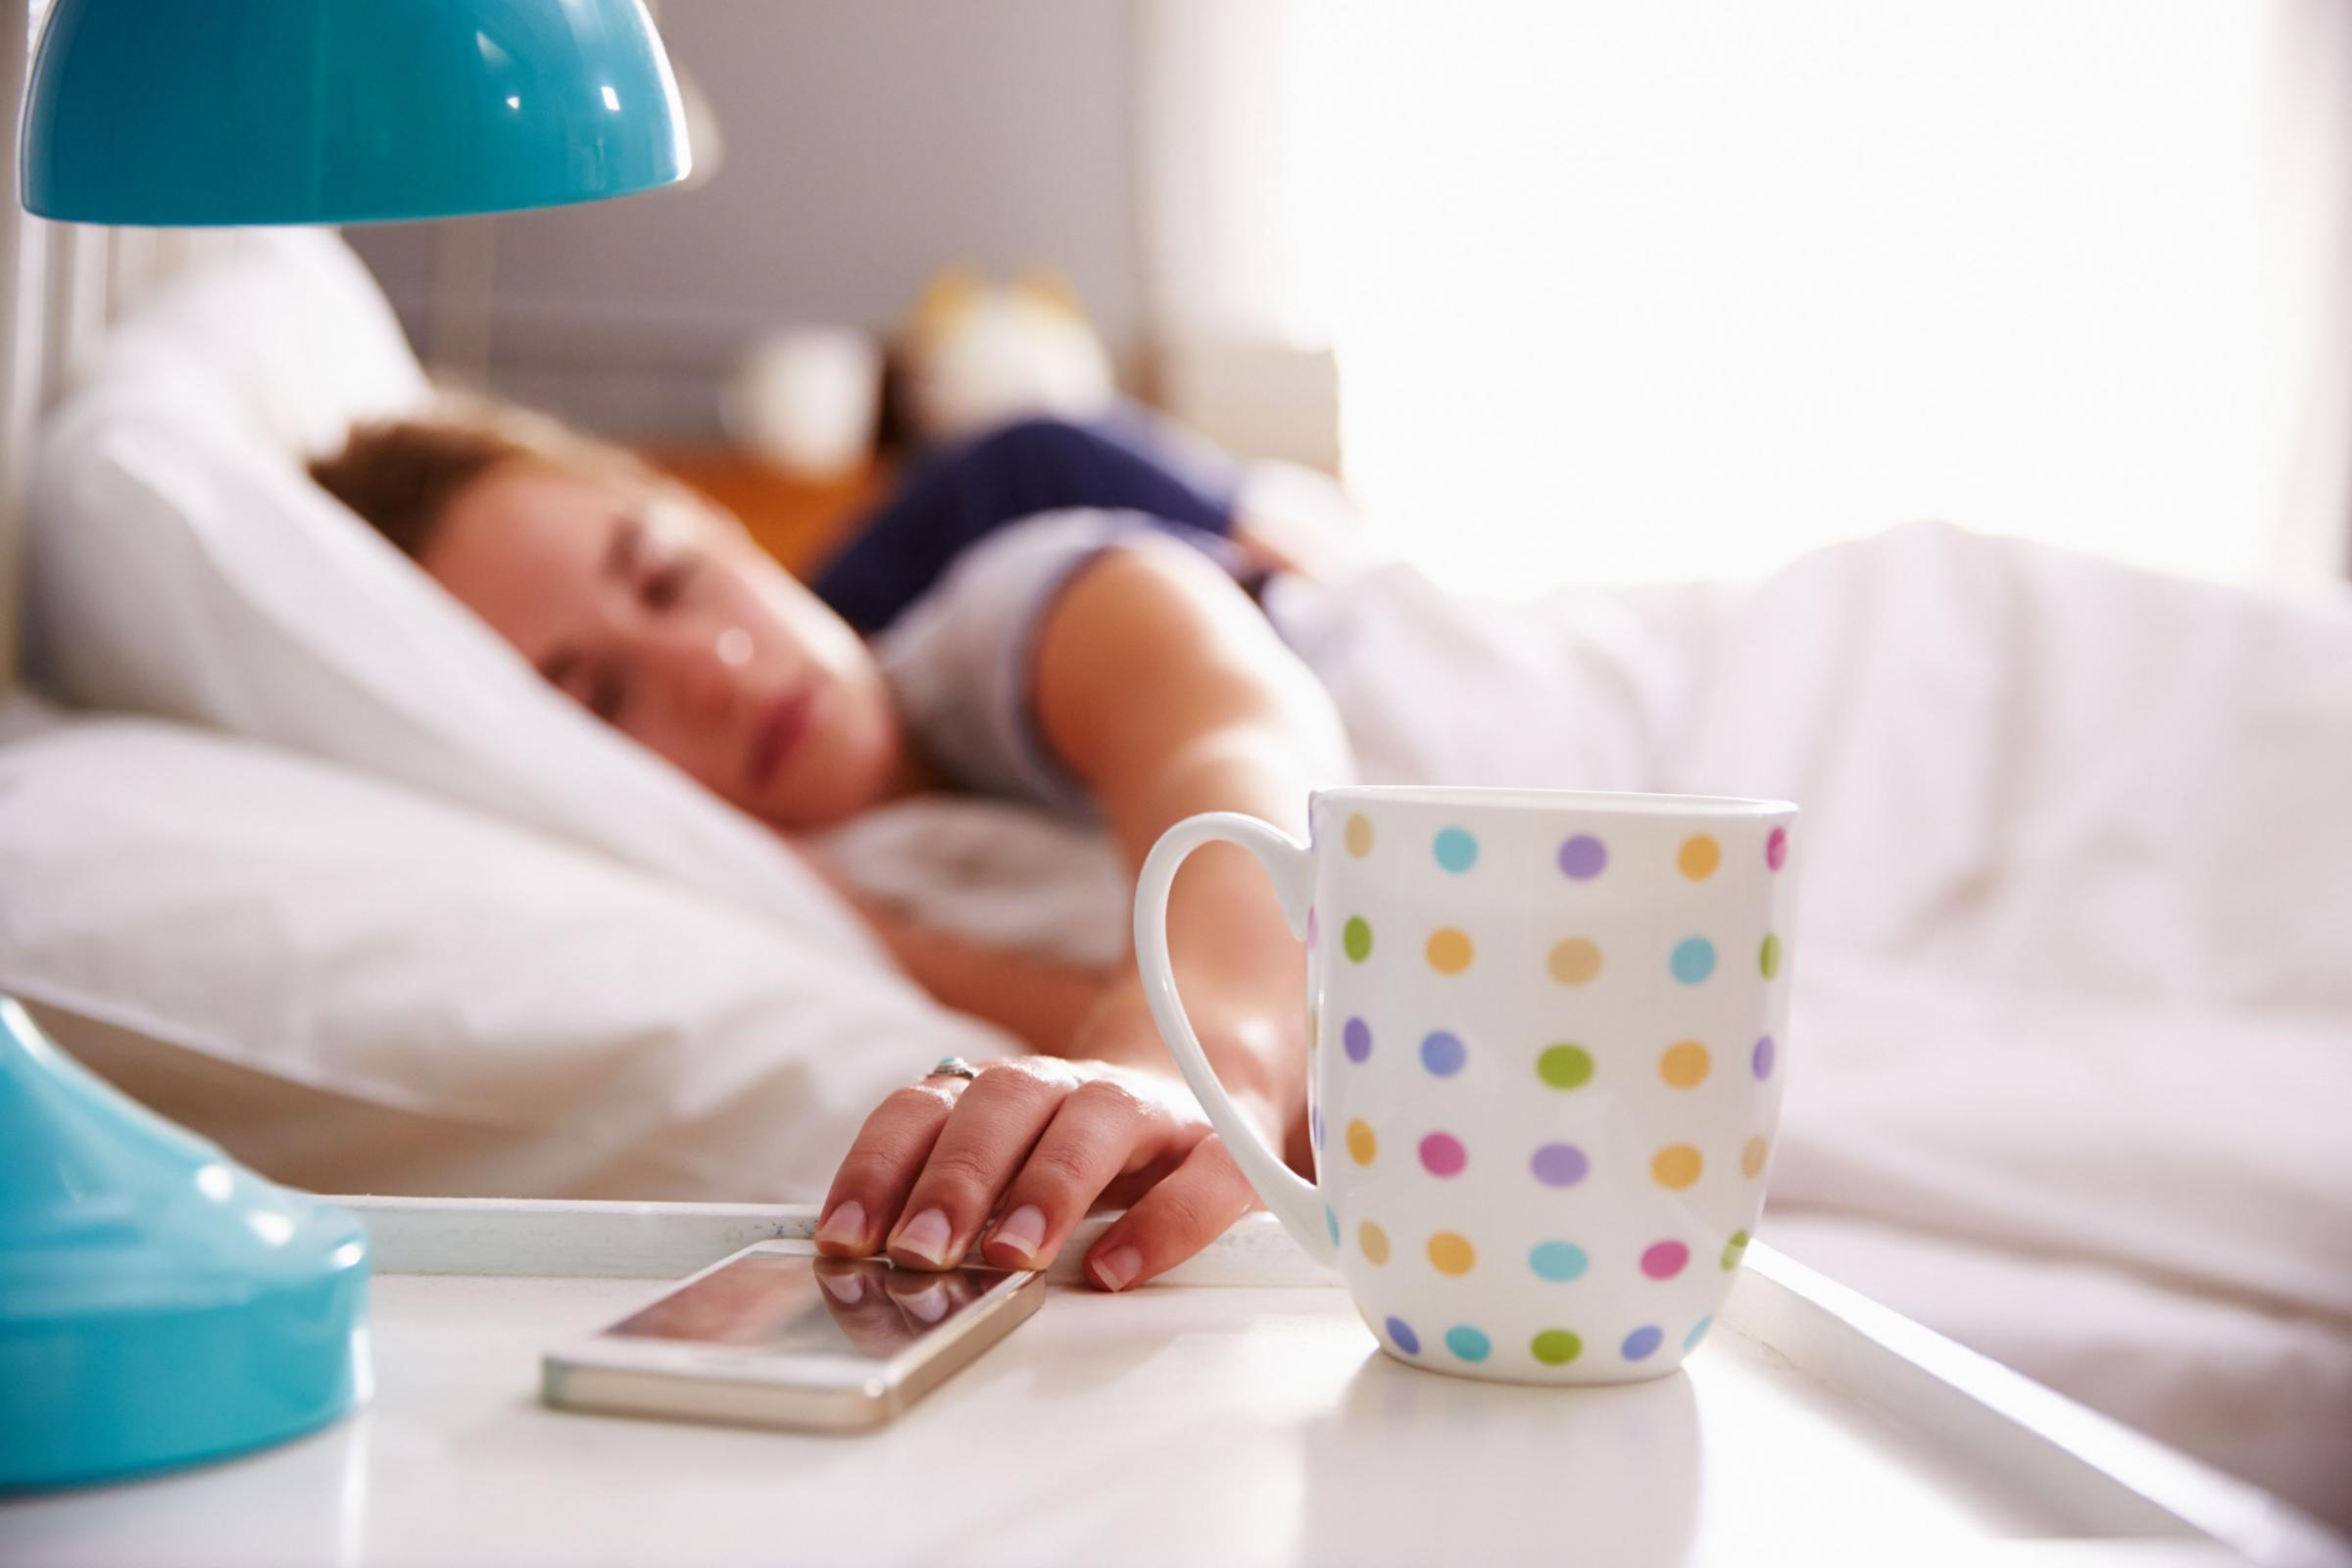 Rosemary Goring: Why women constantly wake up to a feeling of alarm